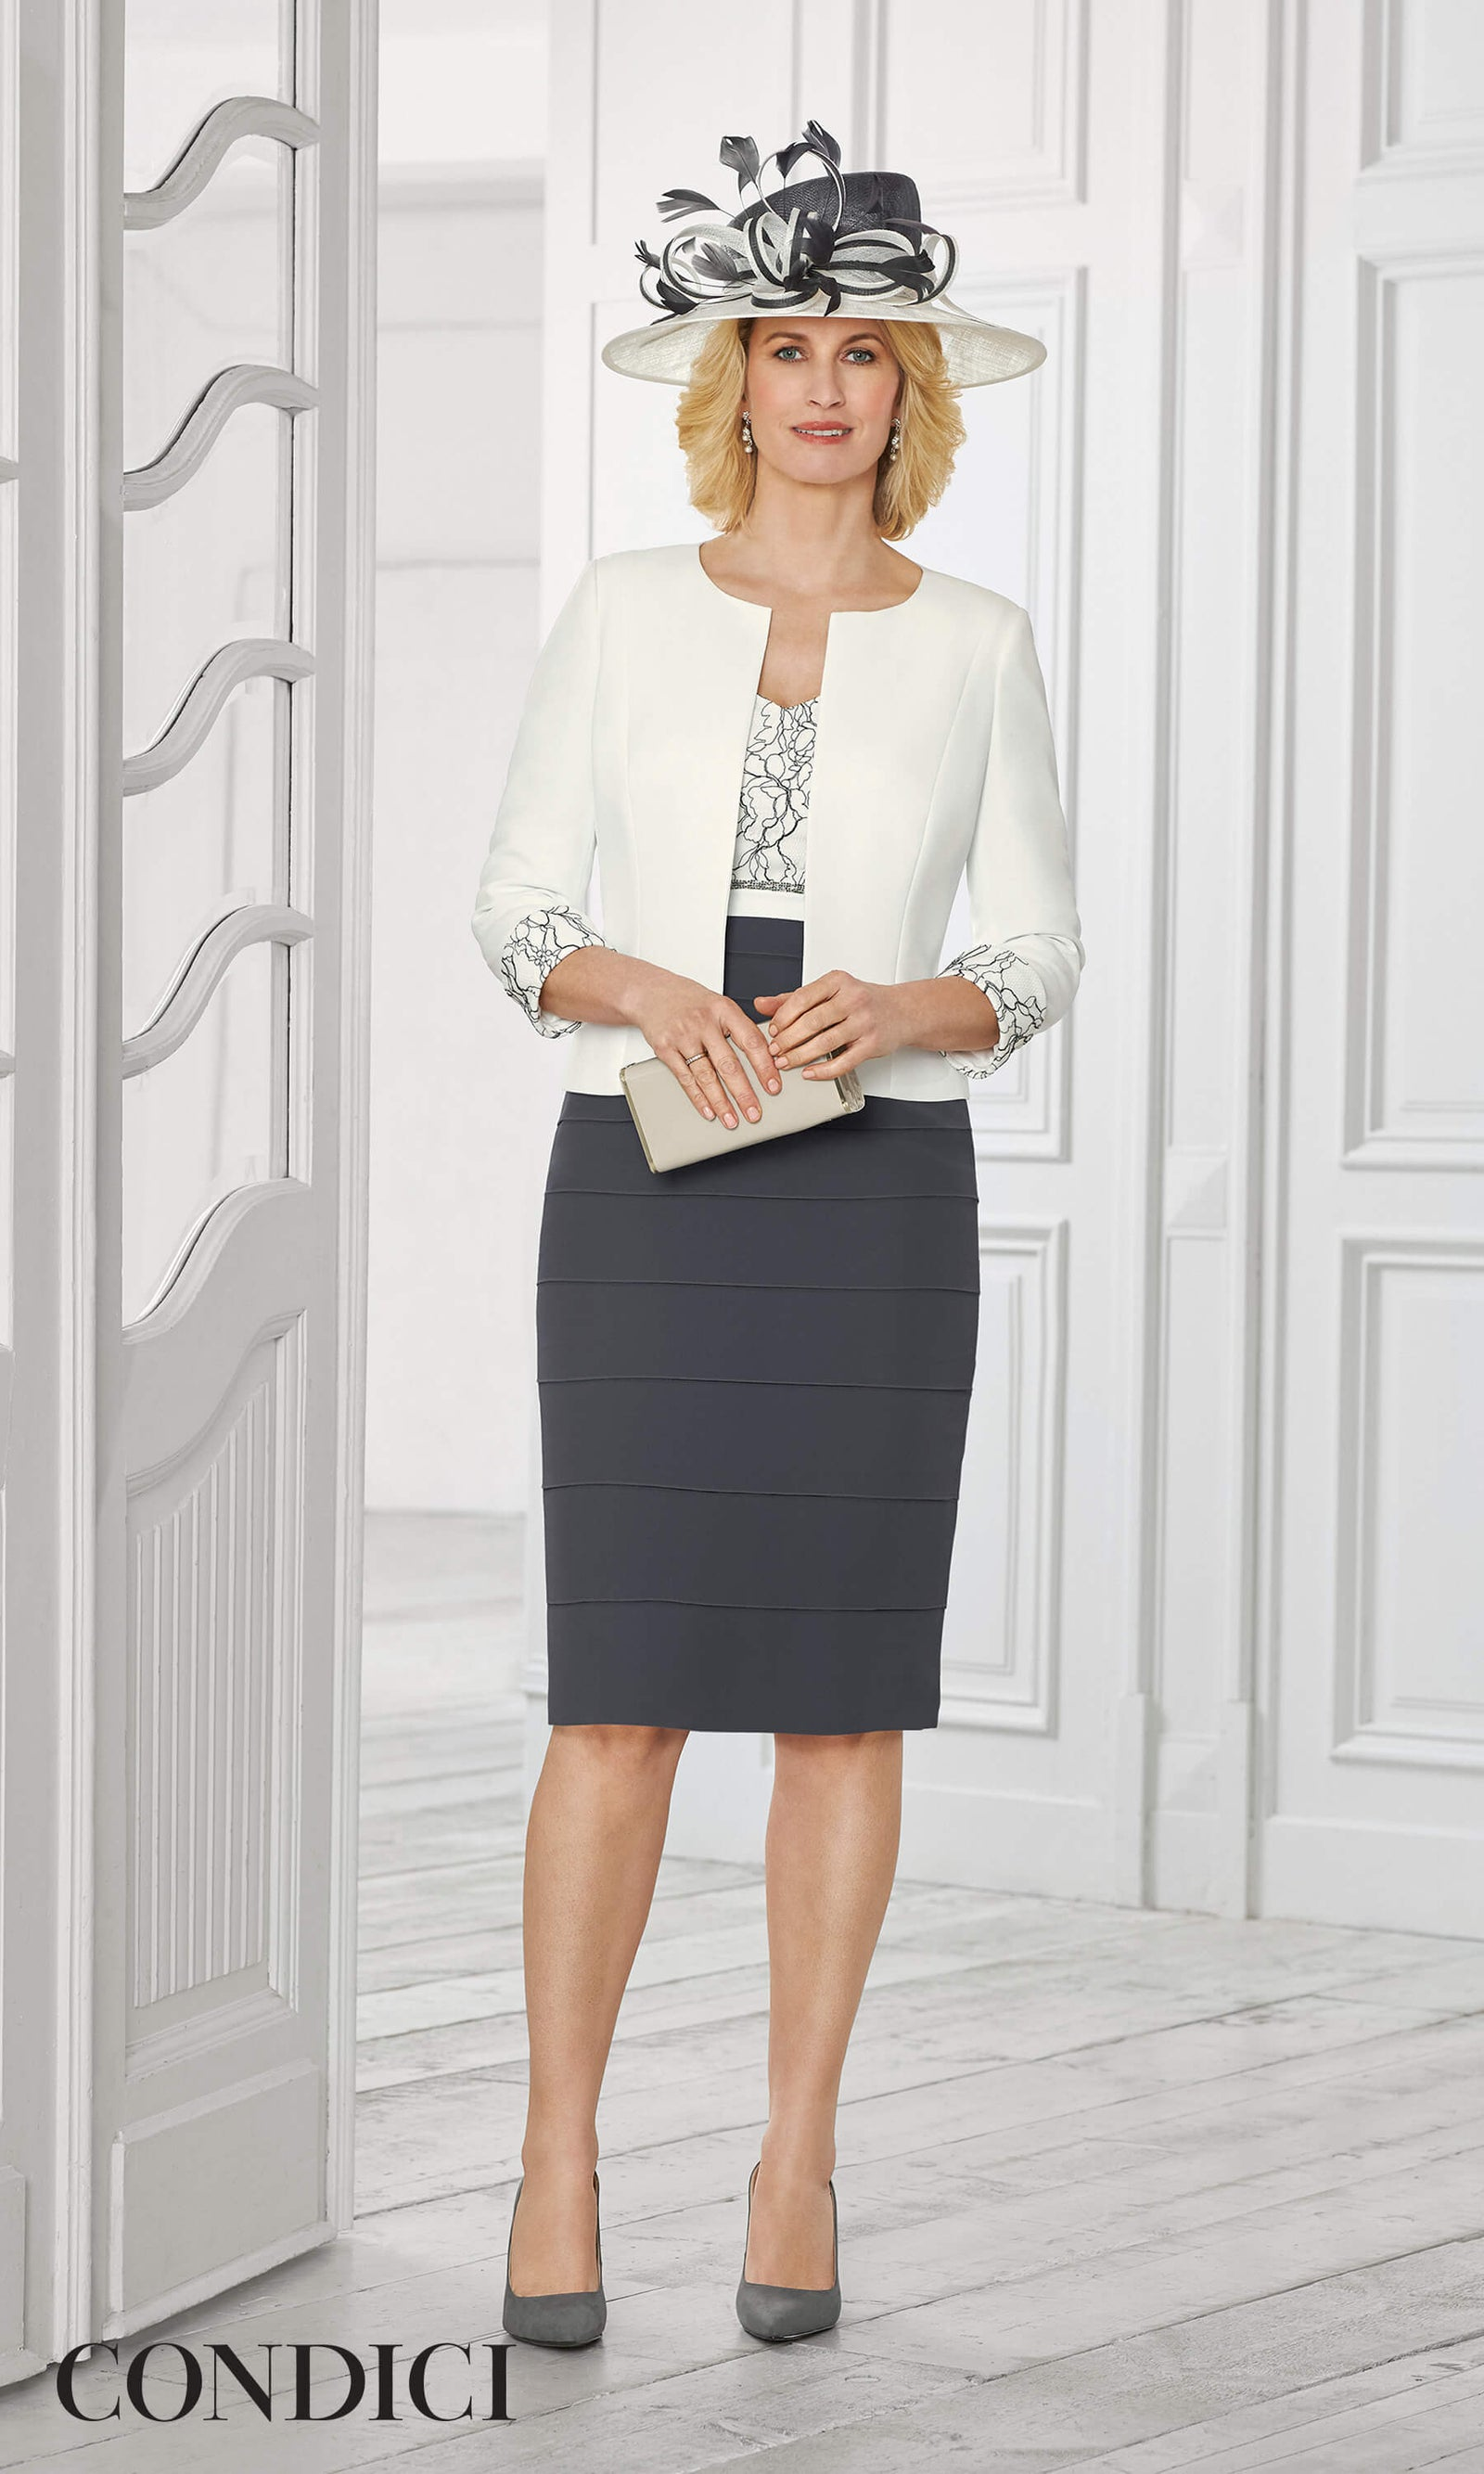 71030 Condici Cream Slate Grey Dress & Bolero - Fab Frocks